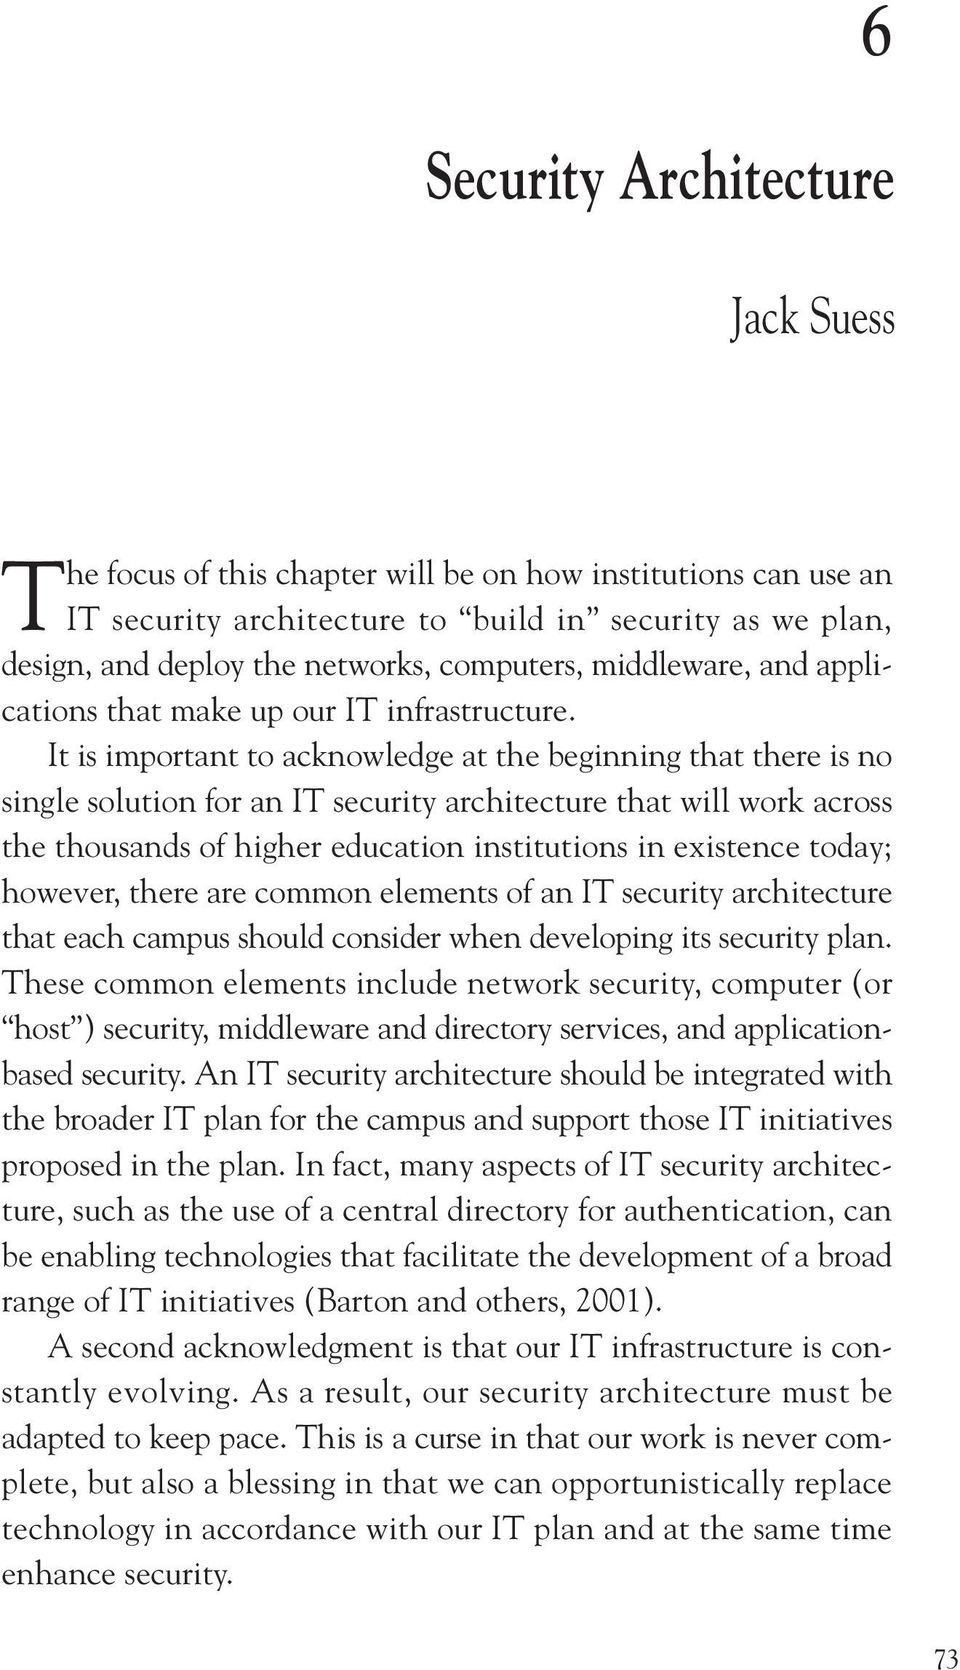 It is important to acknowledge at the beginning that there is no single solution for an IT security architecture that will work across the thousands of higher education institutions in existence